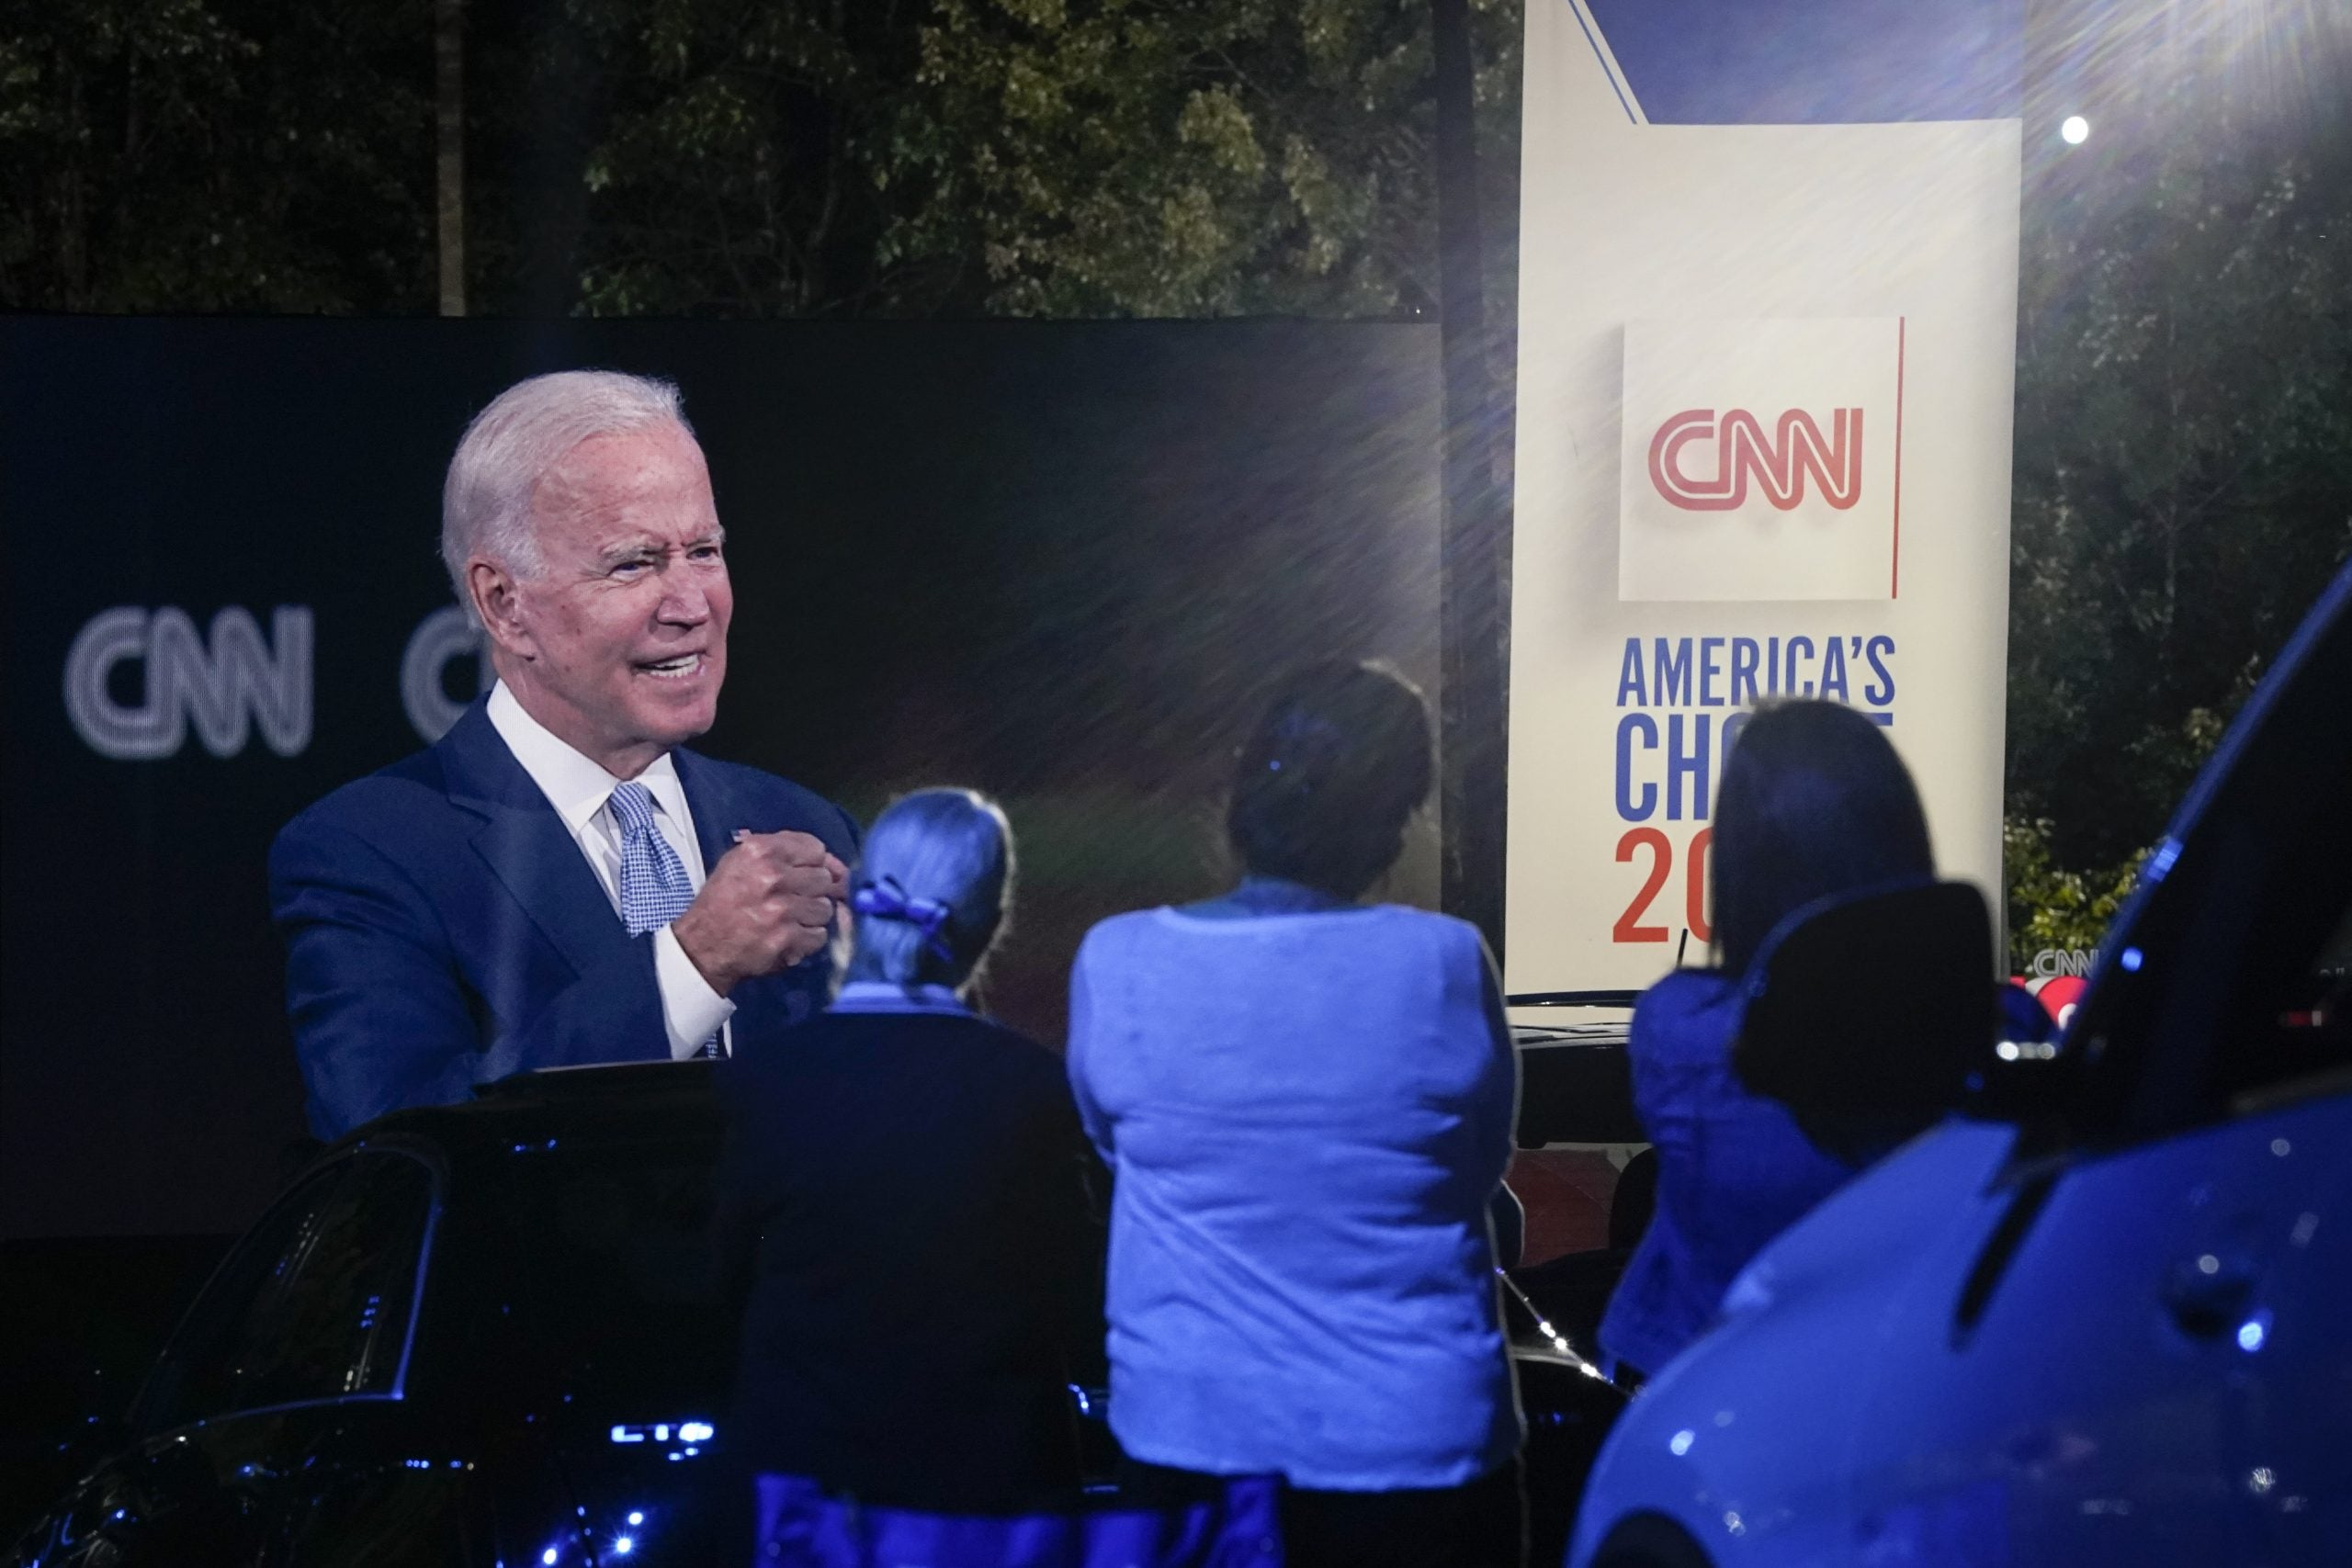 Joe Biden and the US media's fight to restore objective truth